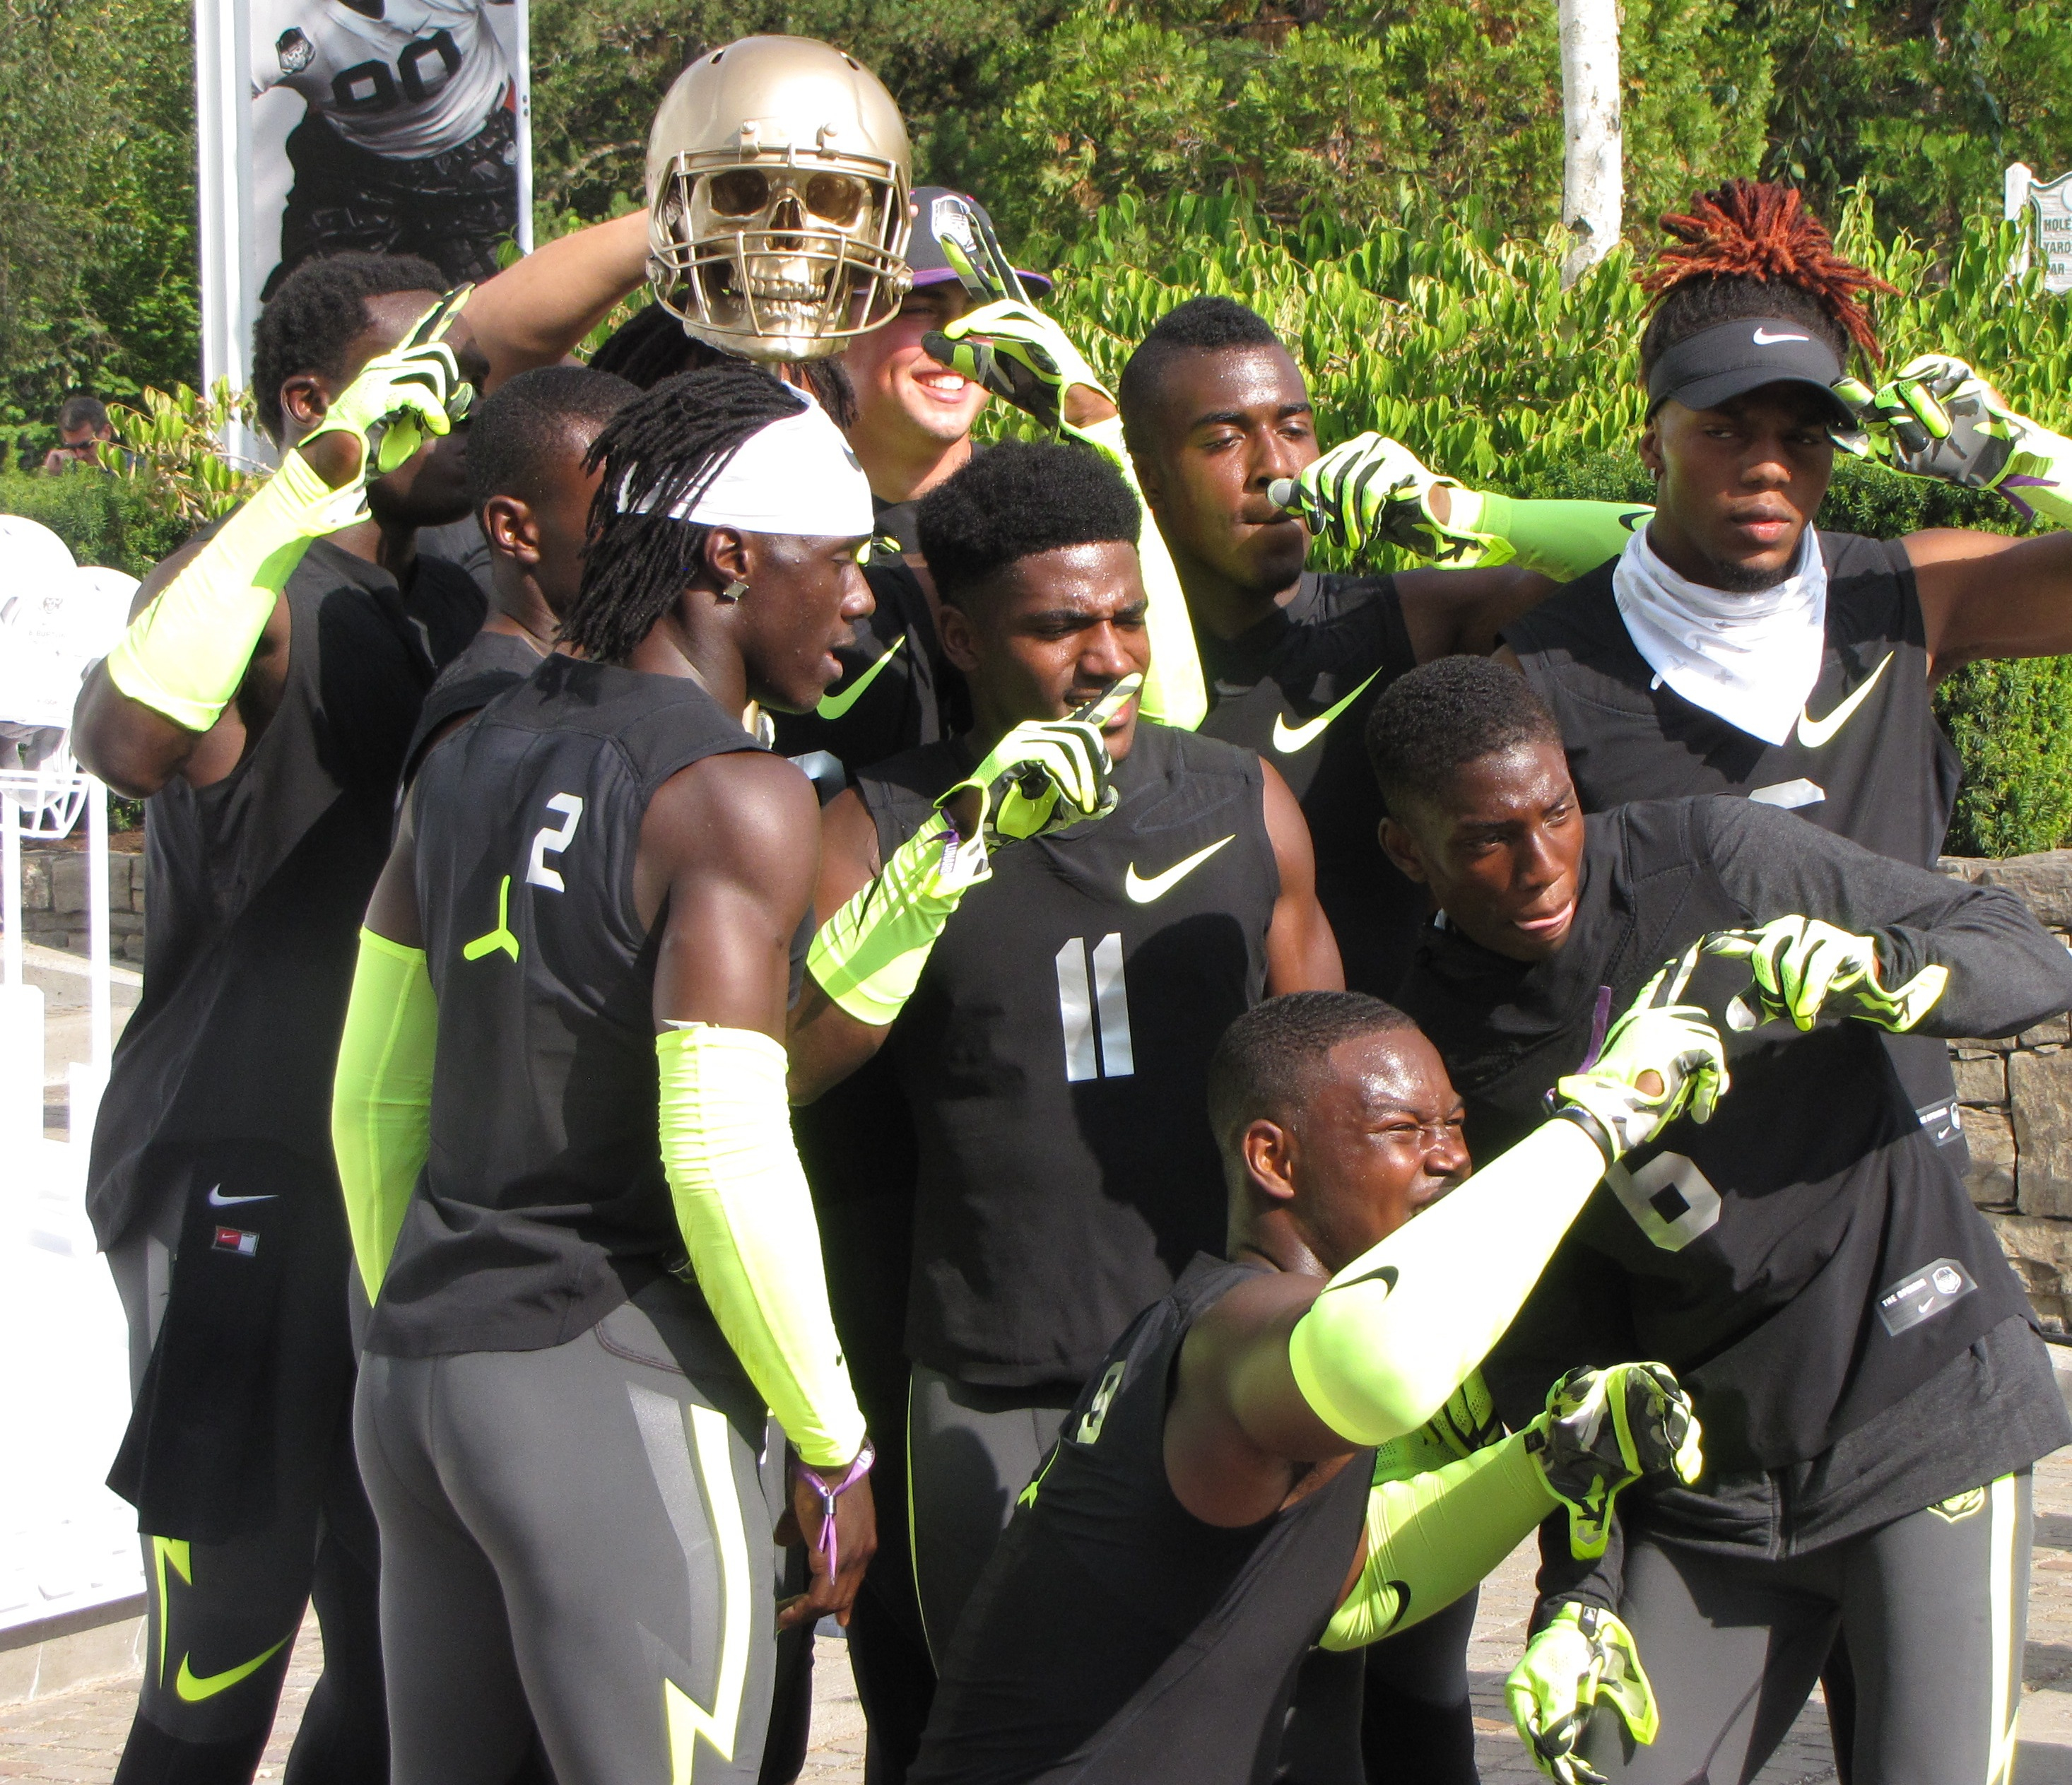 Team Lunarbeast players celebrate after winning the 7 on 7 at The Opening on Friday. (Photo: Jim Halley, USA TODAY Sports)